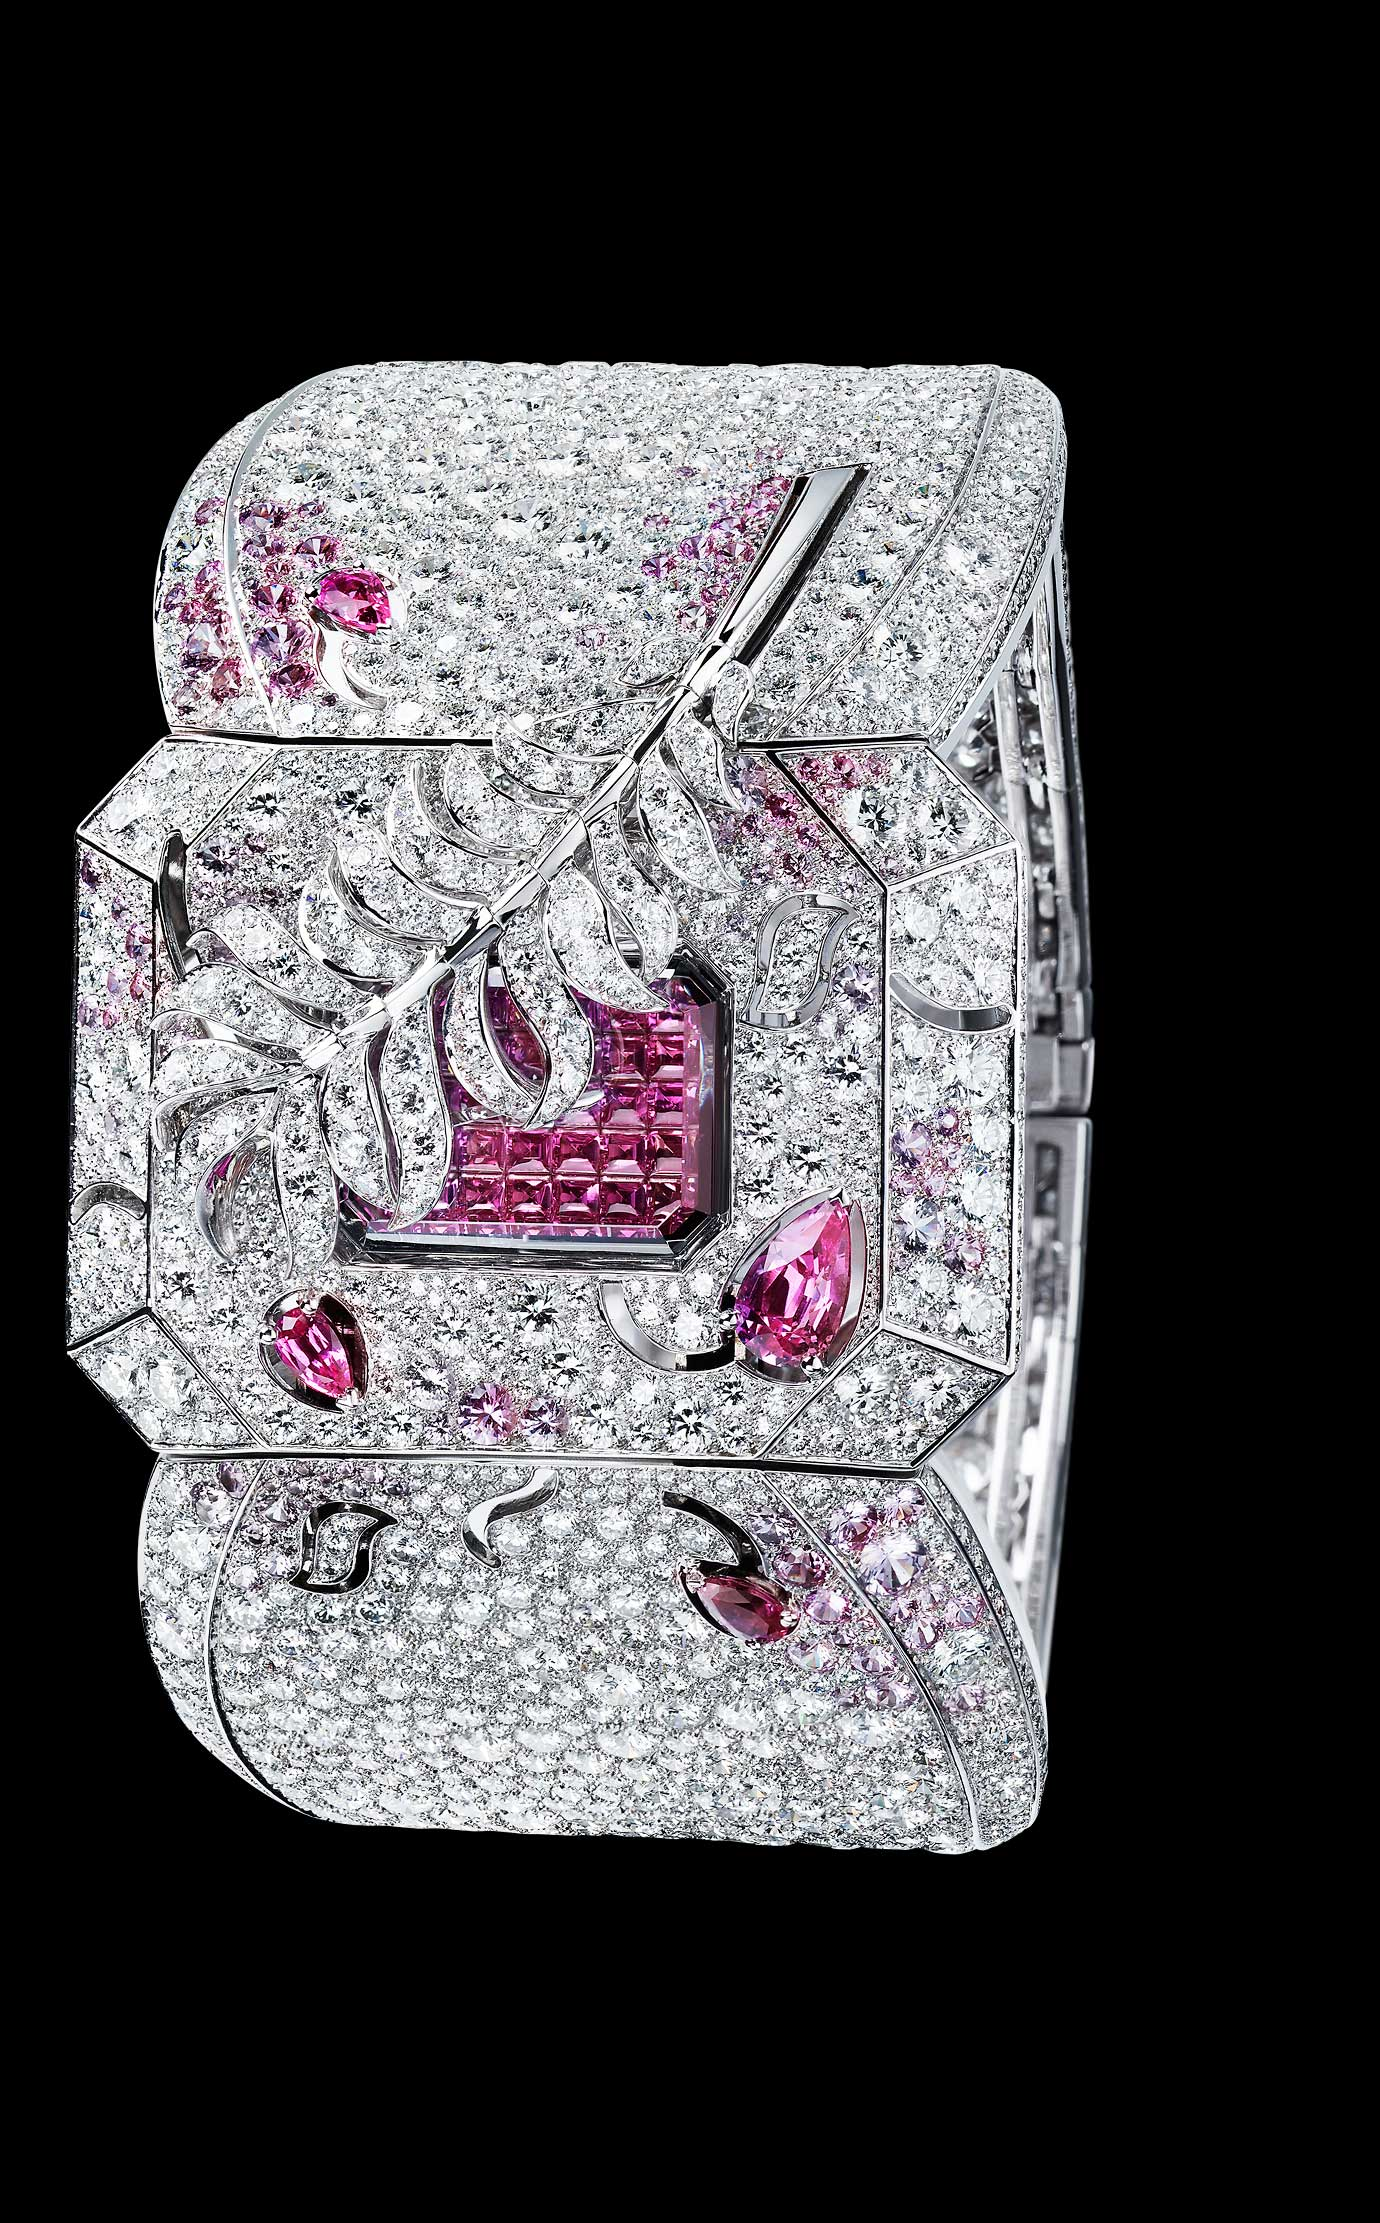 Les Eternelles de CHANEL. Watch in 18K white gold, pink sapphires and diamonds. High-precision quartz movement. - Closed